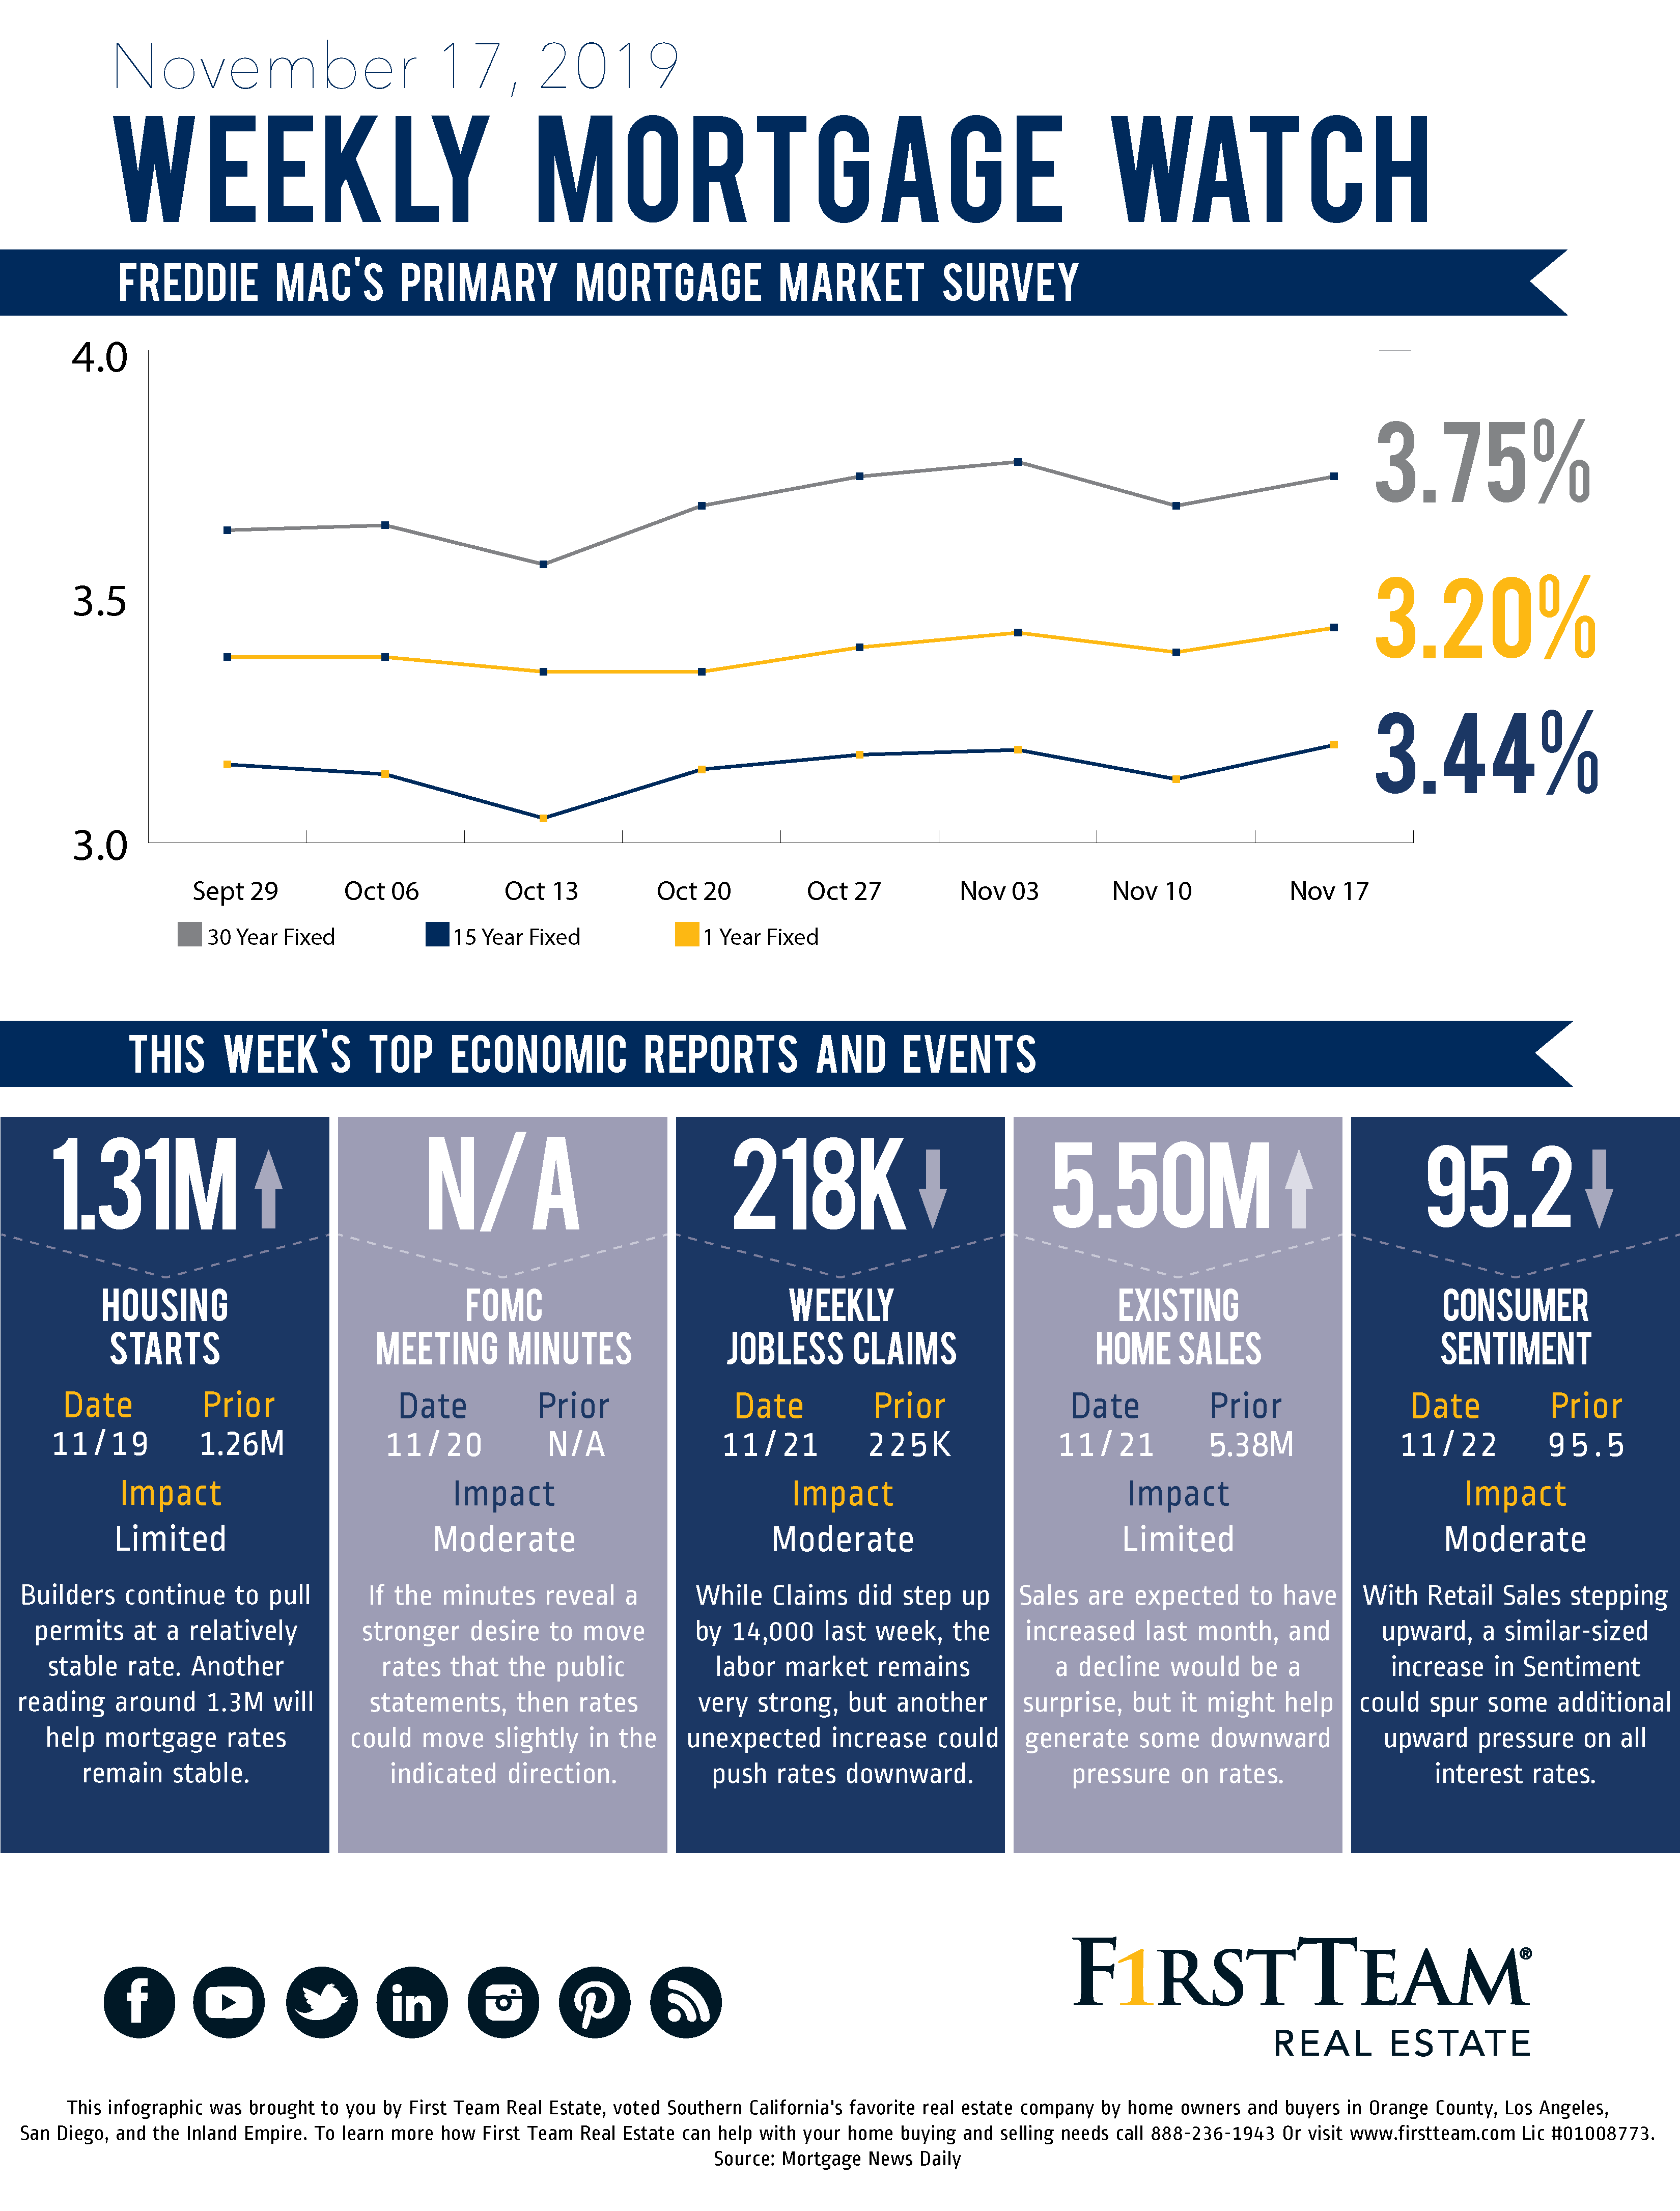 Weekly mortgage watch infographic with graphs and updated information